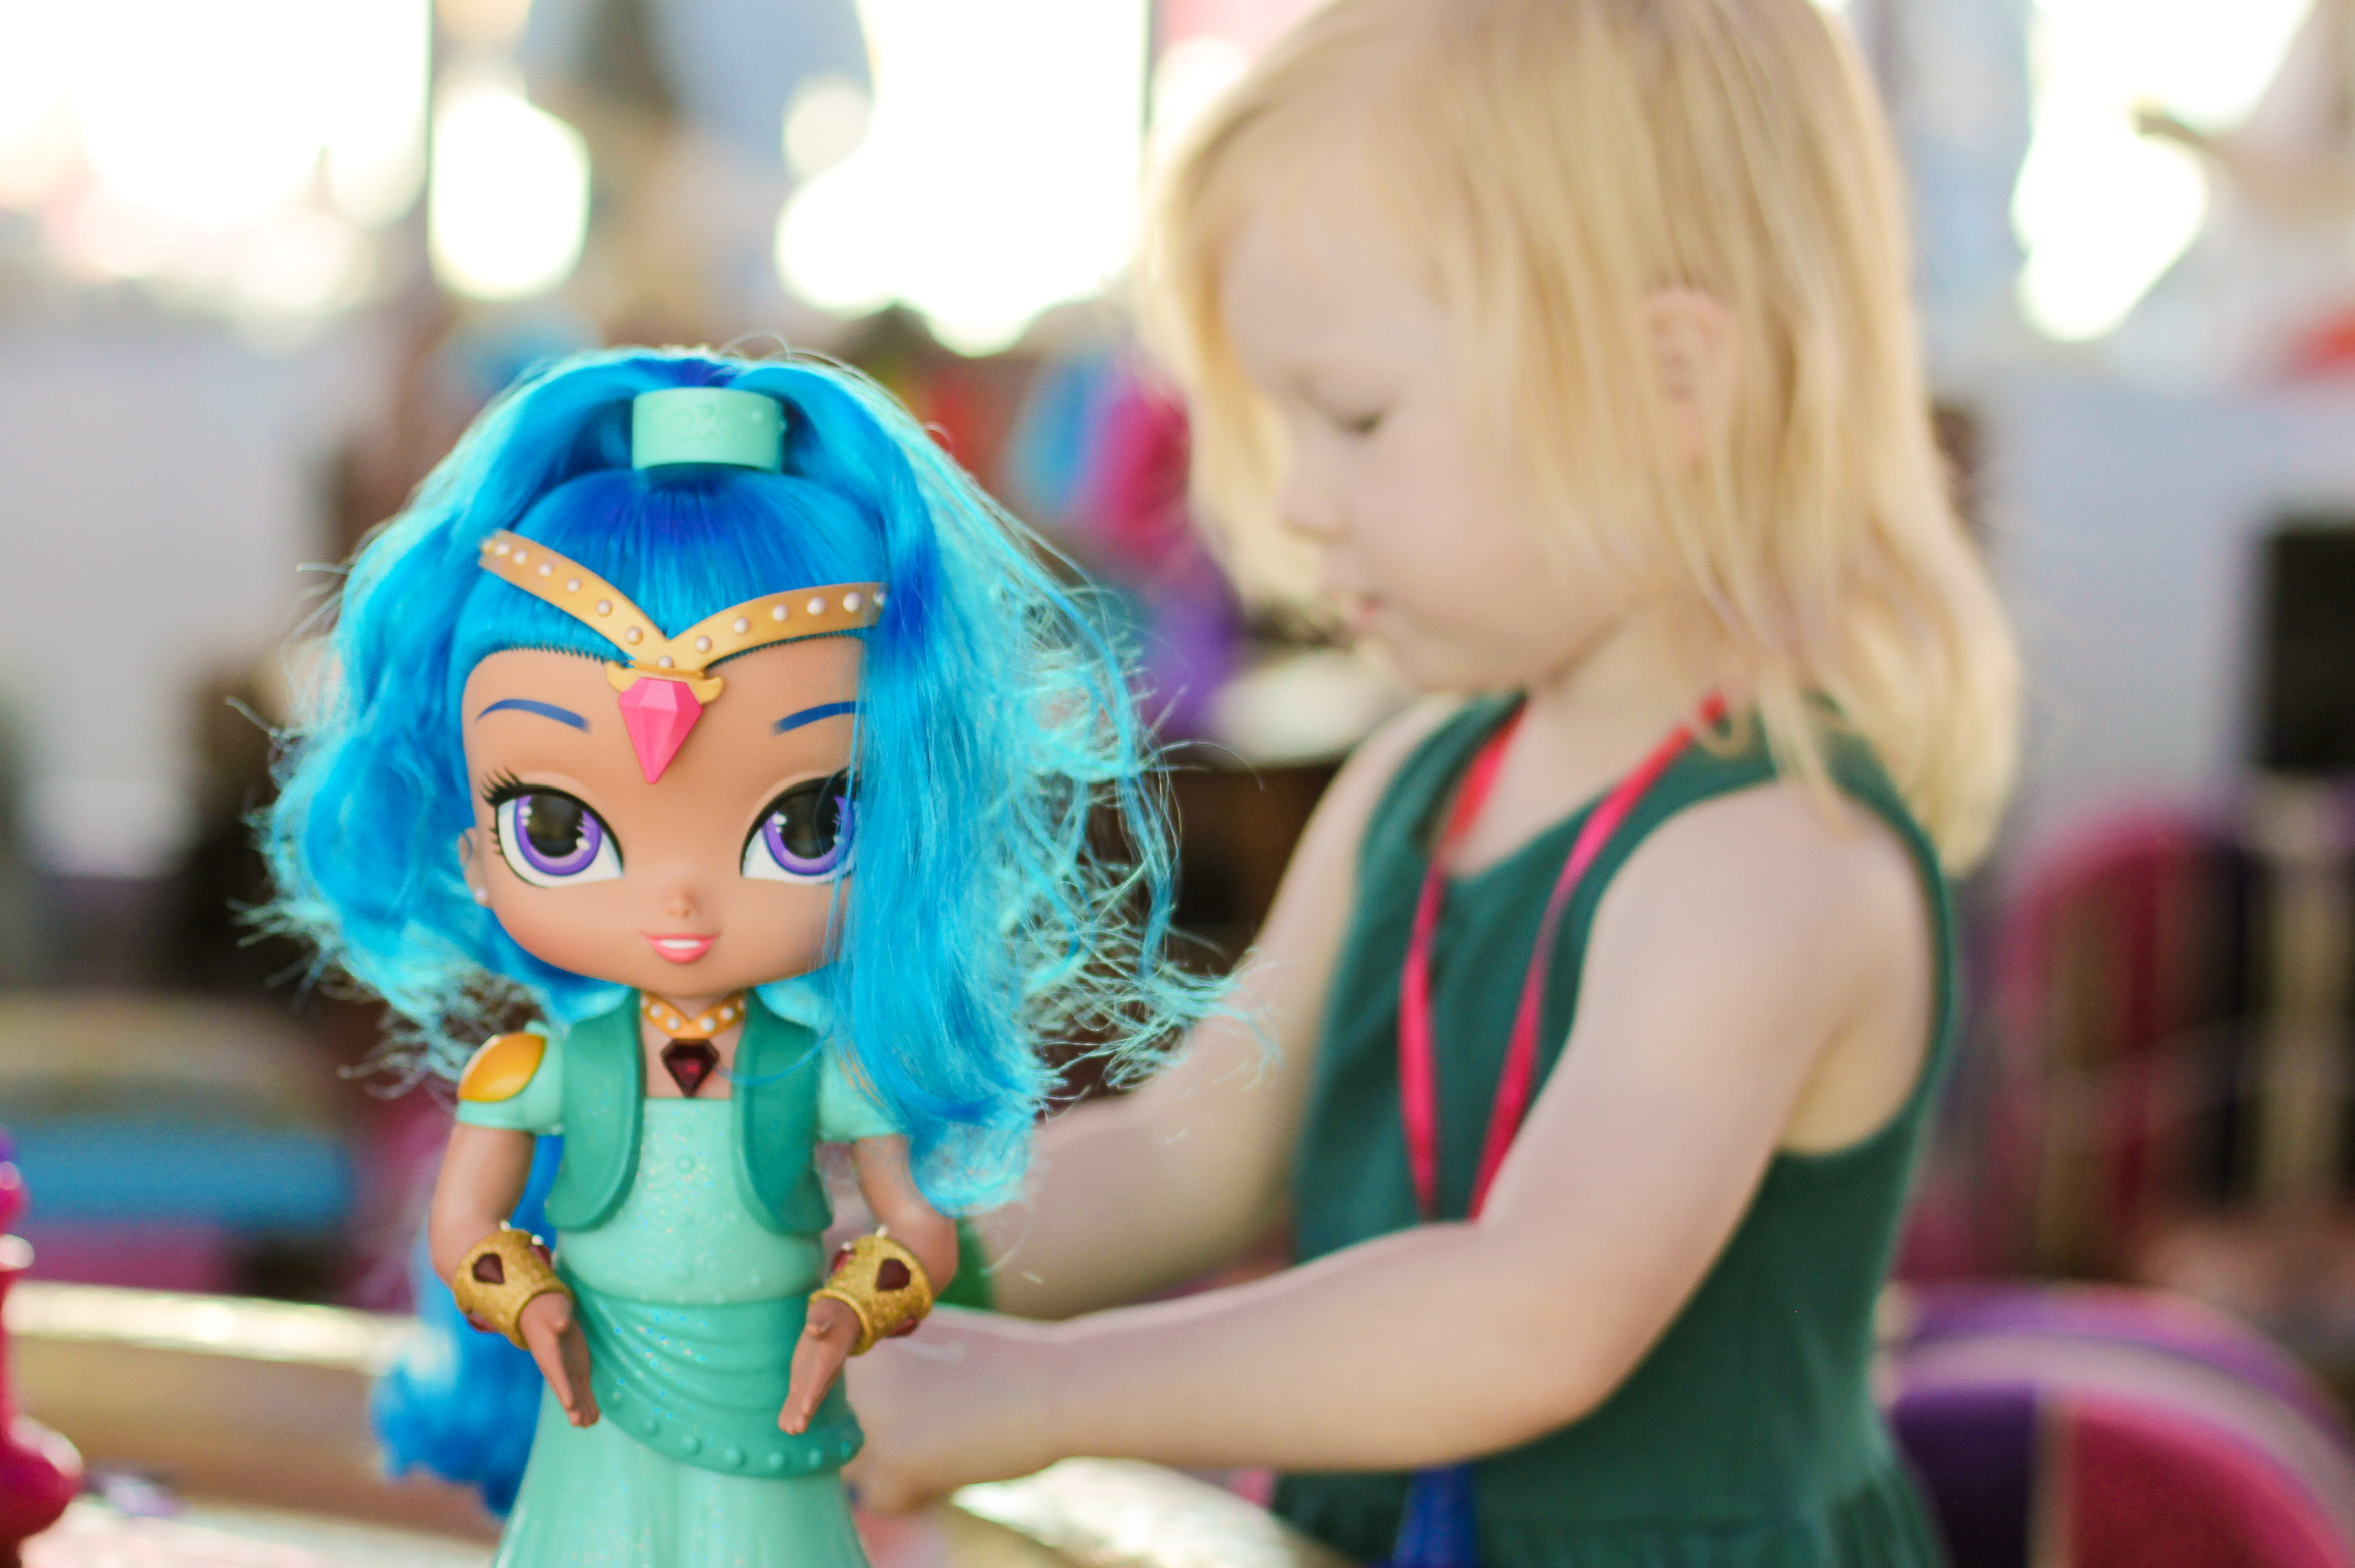 From pink haired dolls to monster trucks......why little girls should play with ALL toys.